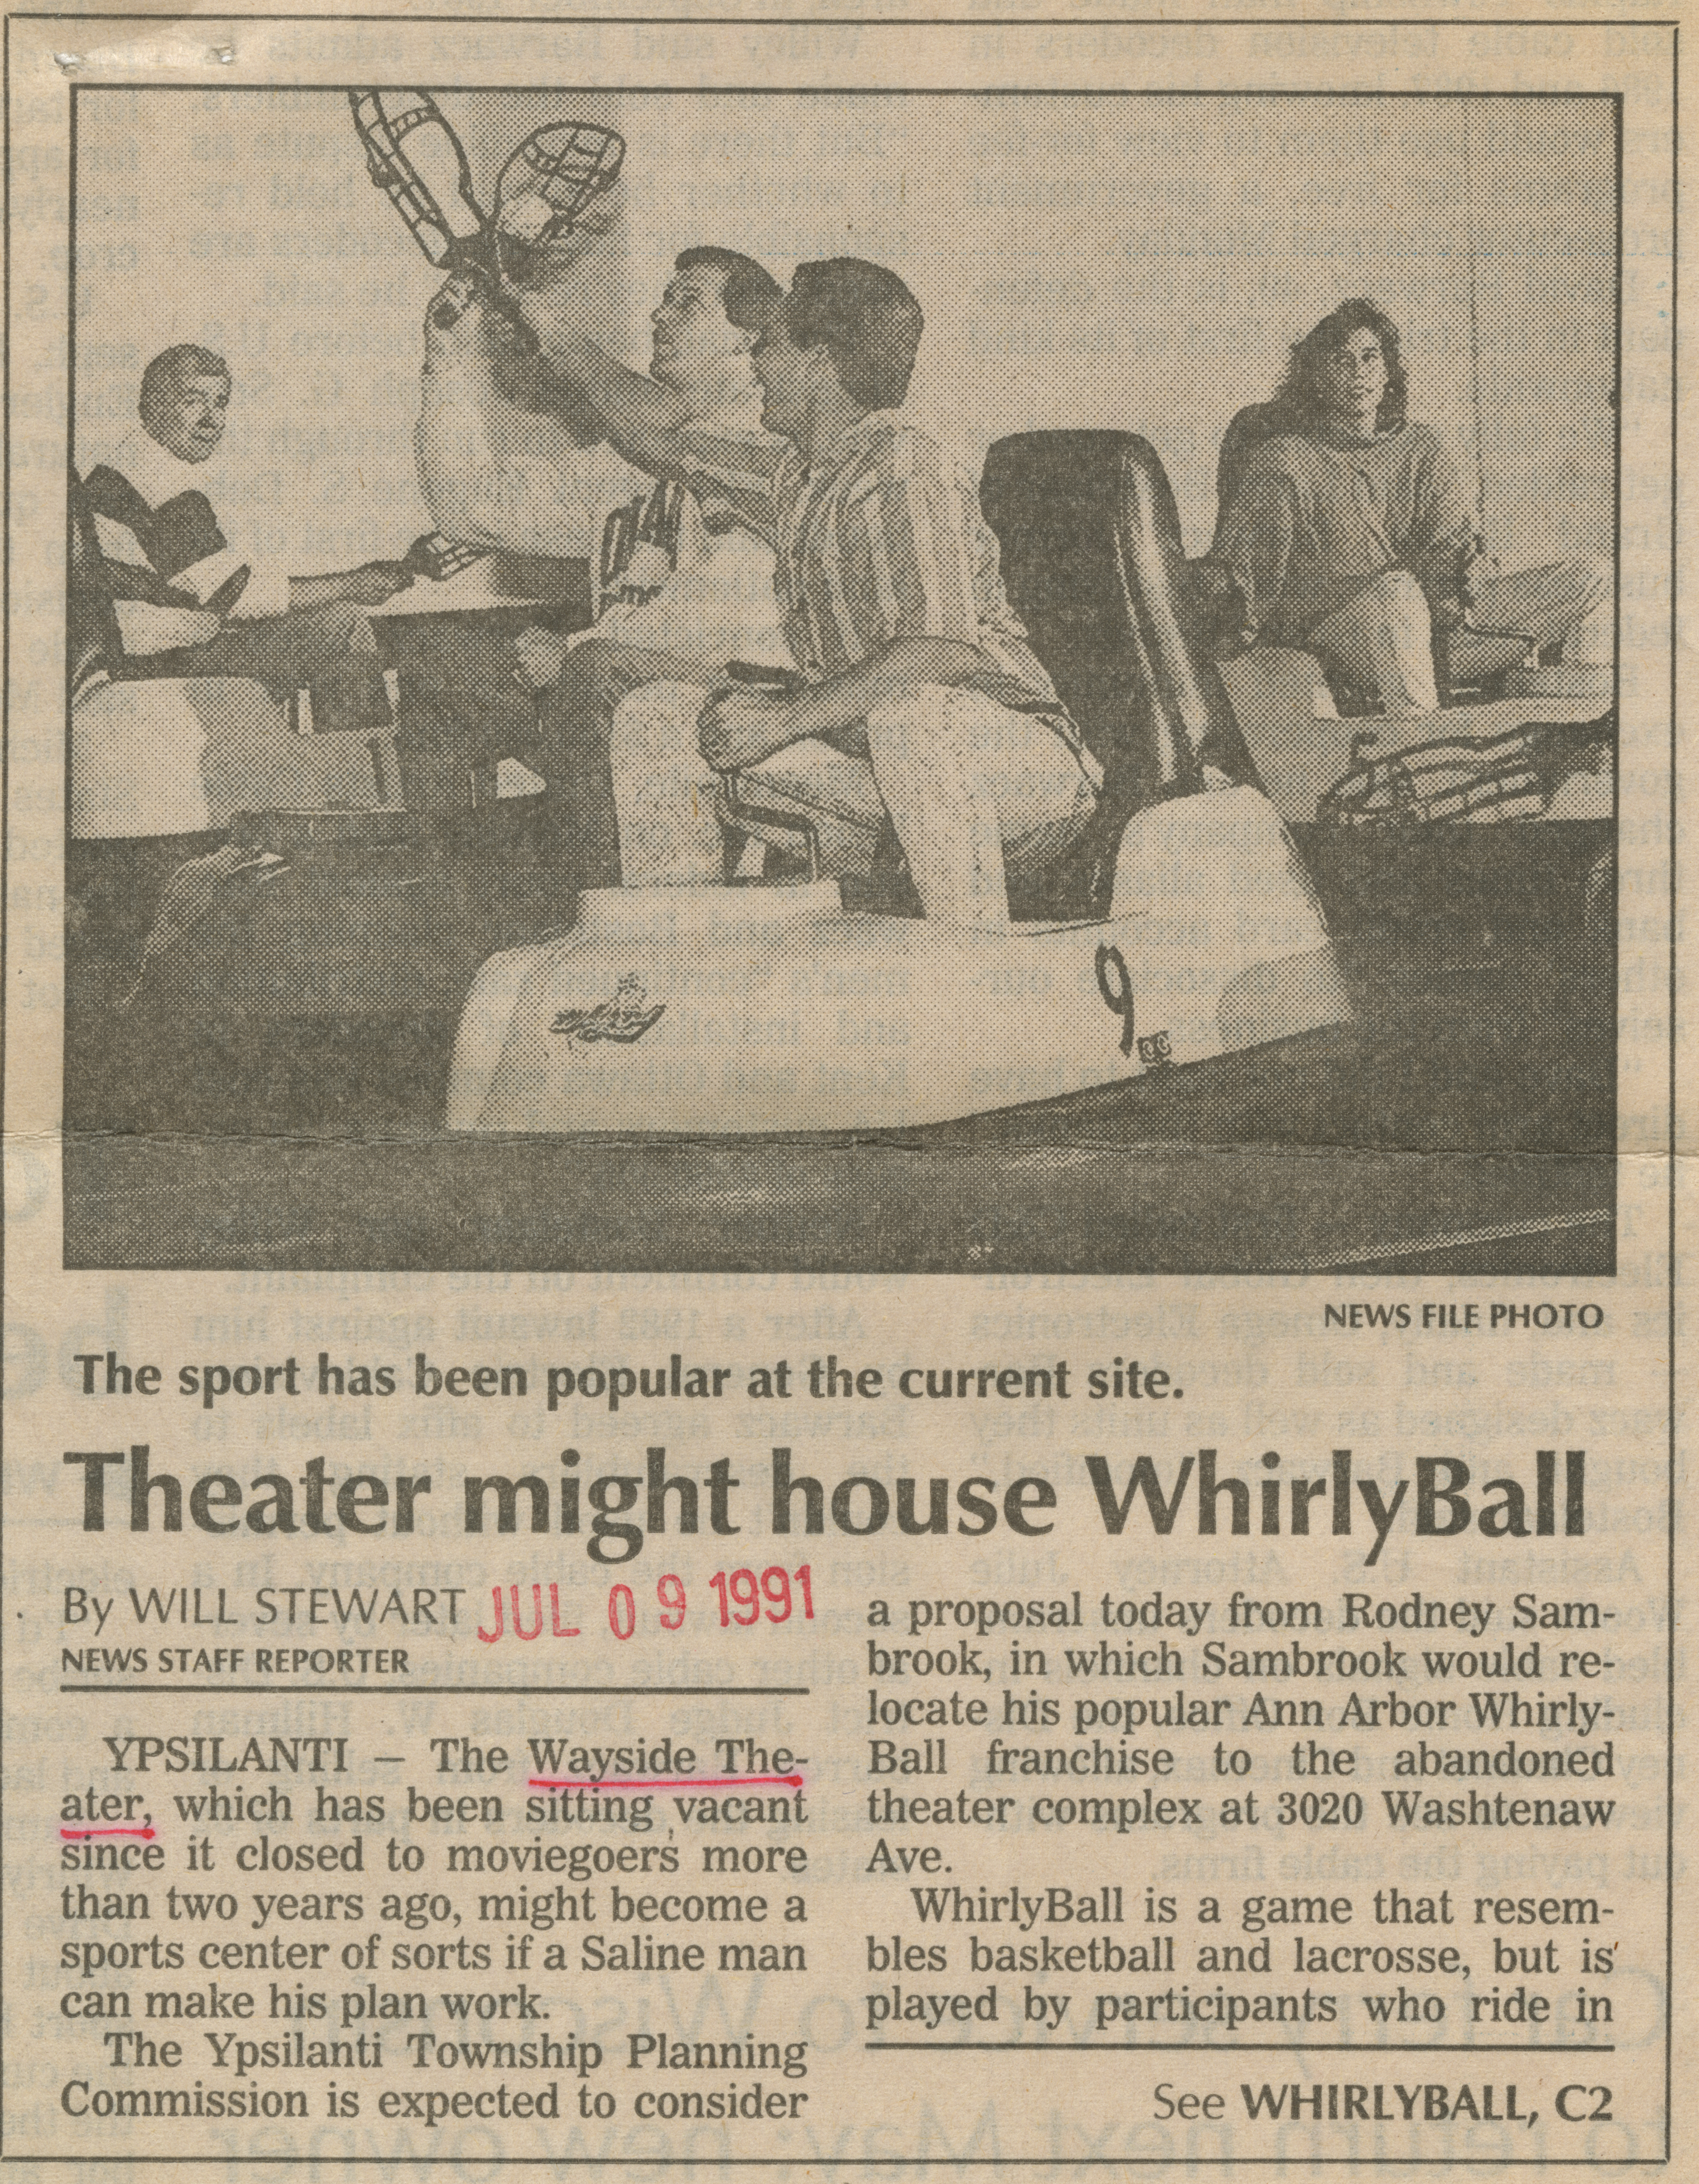 Theater might house WhirlyBall image